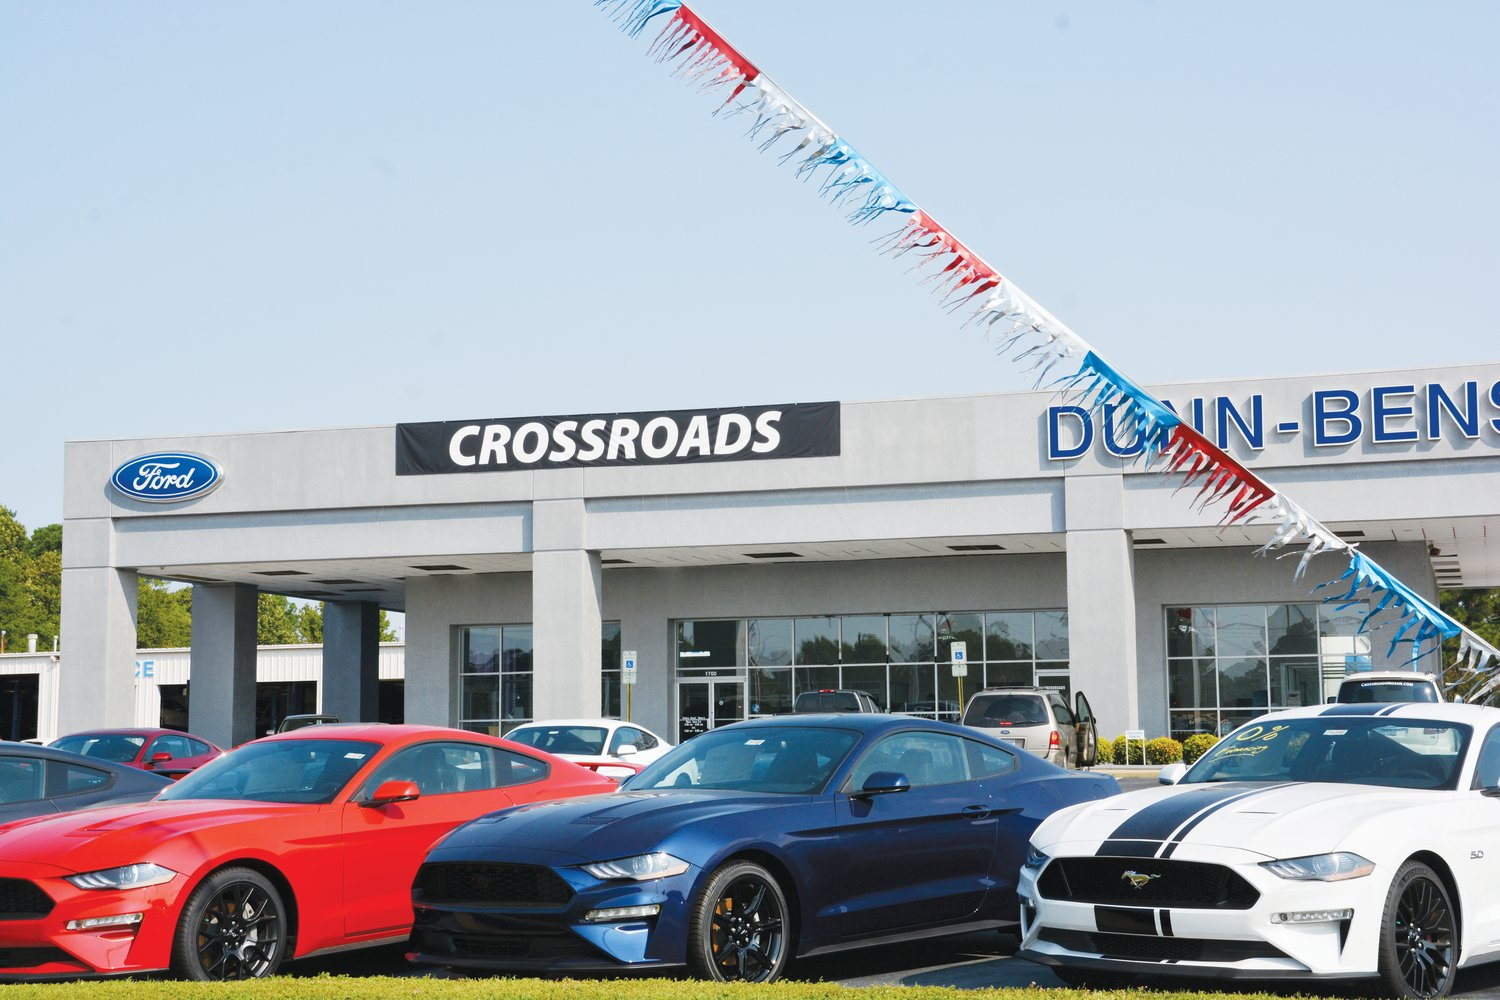 Dunn-Benson Ford has been purchased by Crossroads Ford in Cary. A new banner was up on the Dunn building Thursday.